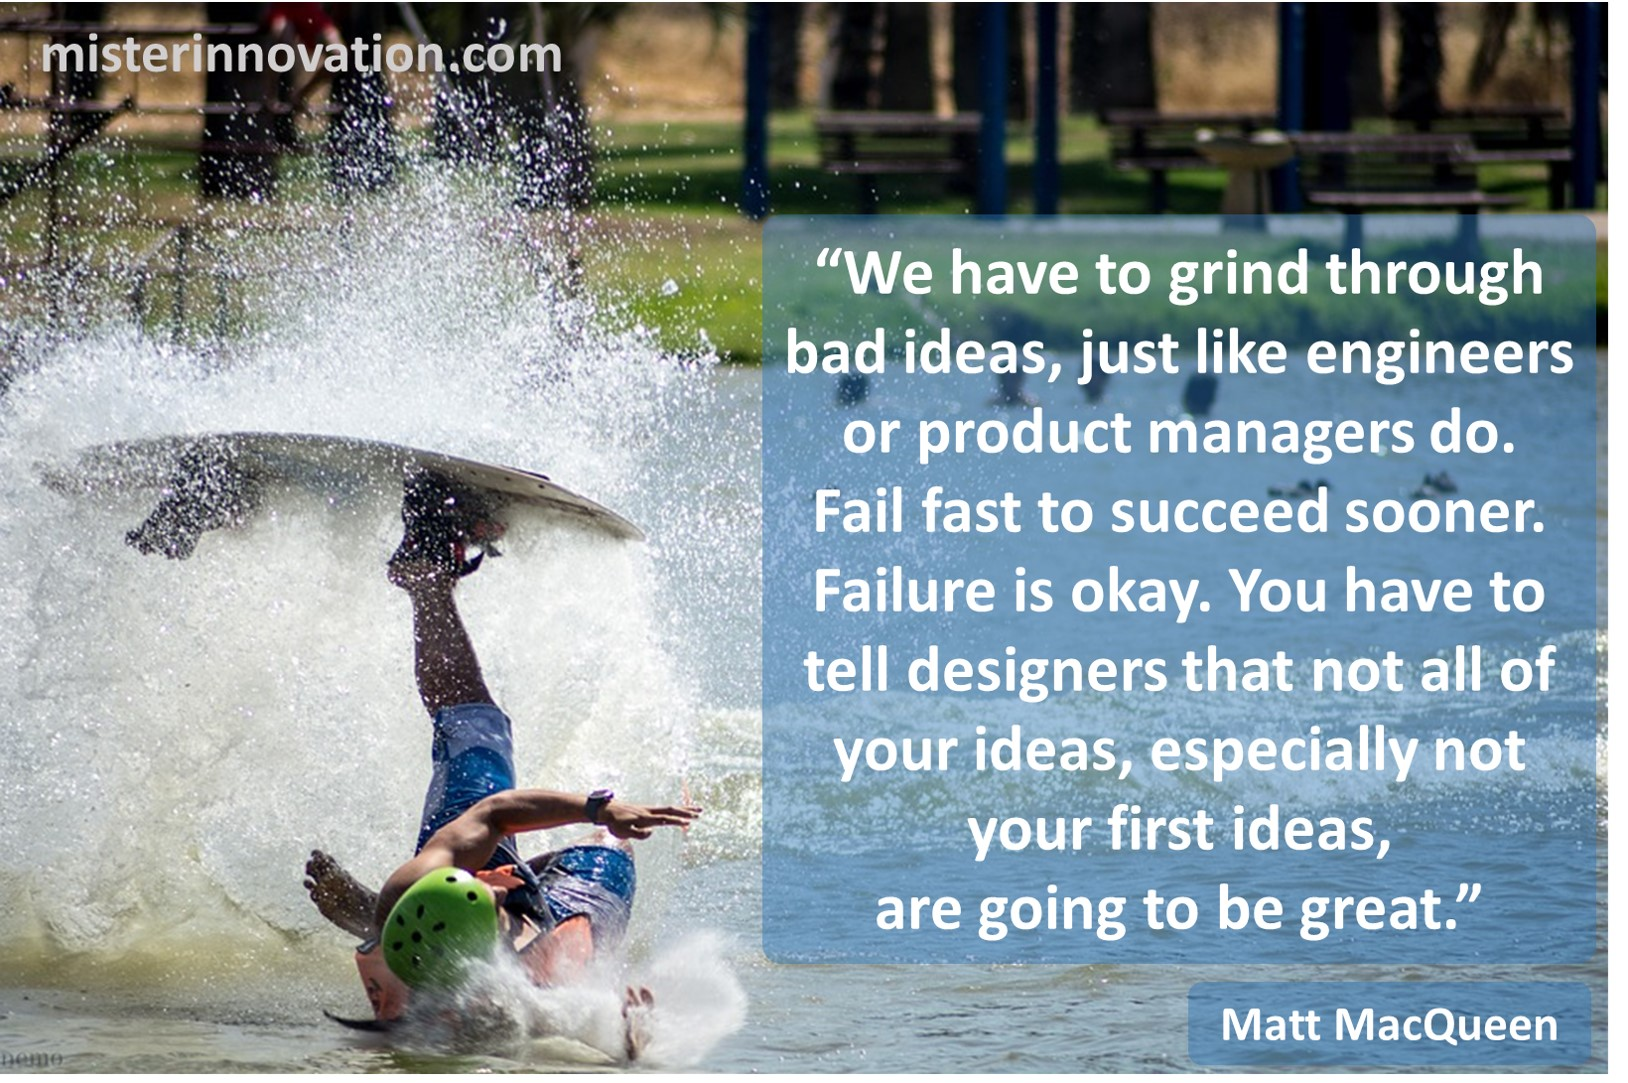 Matt MacQueen Quote on Fail Fast to Succeed Sooner